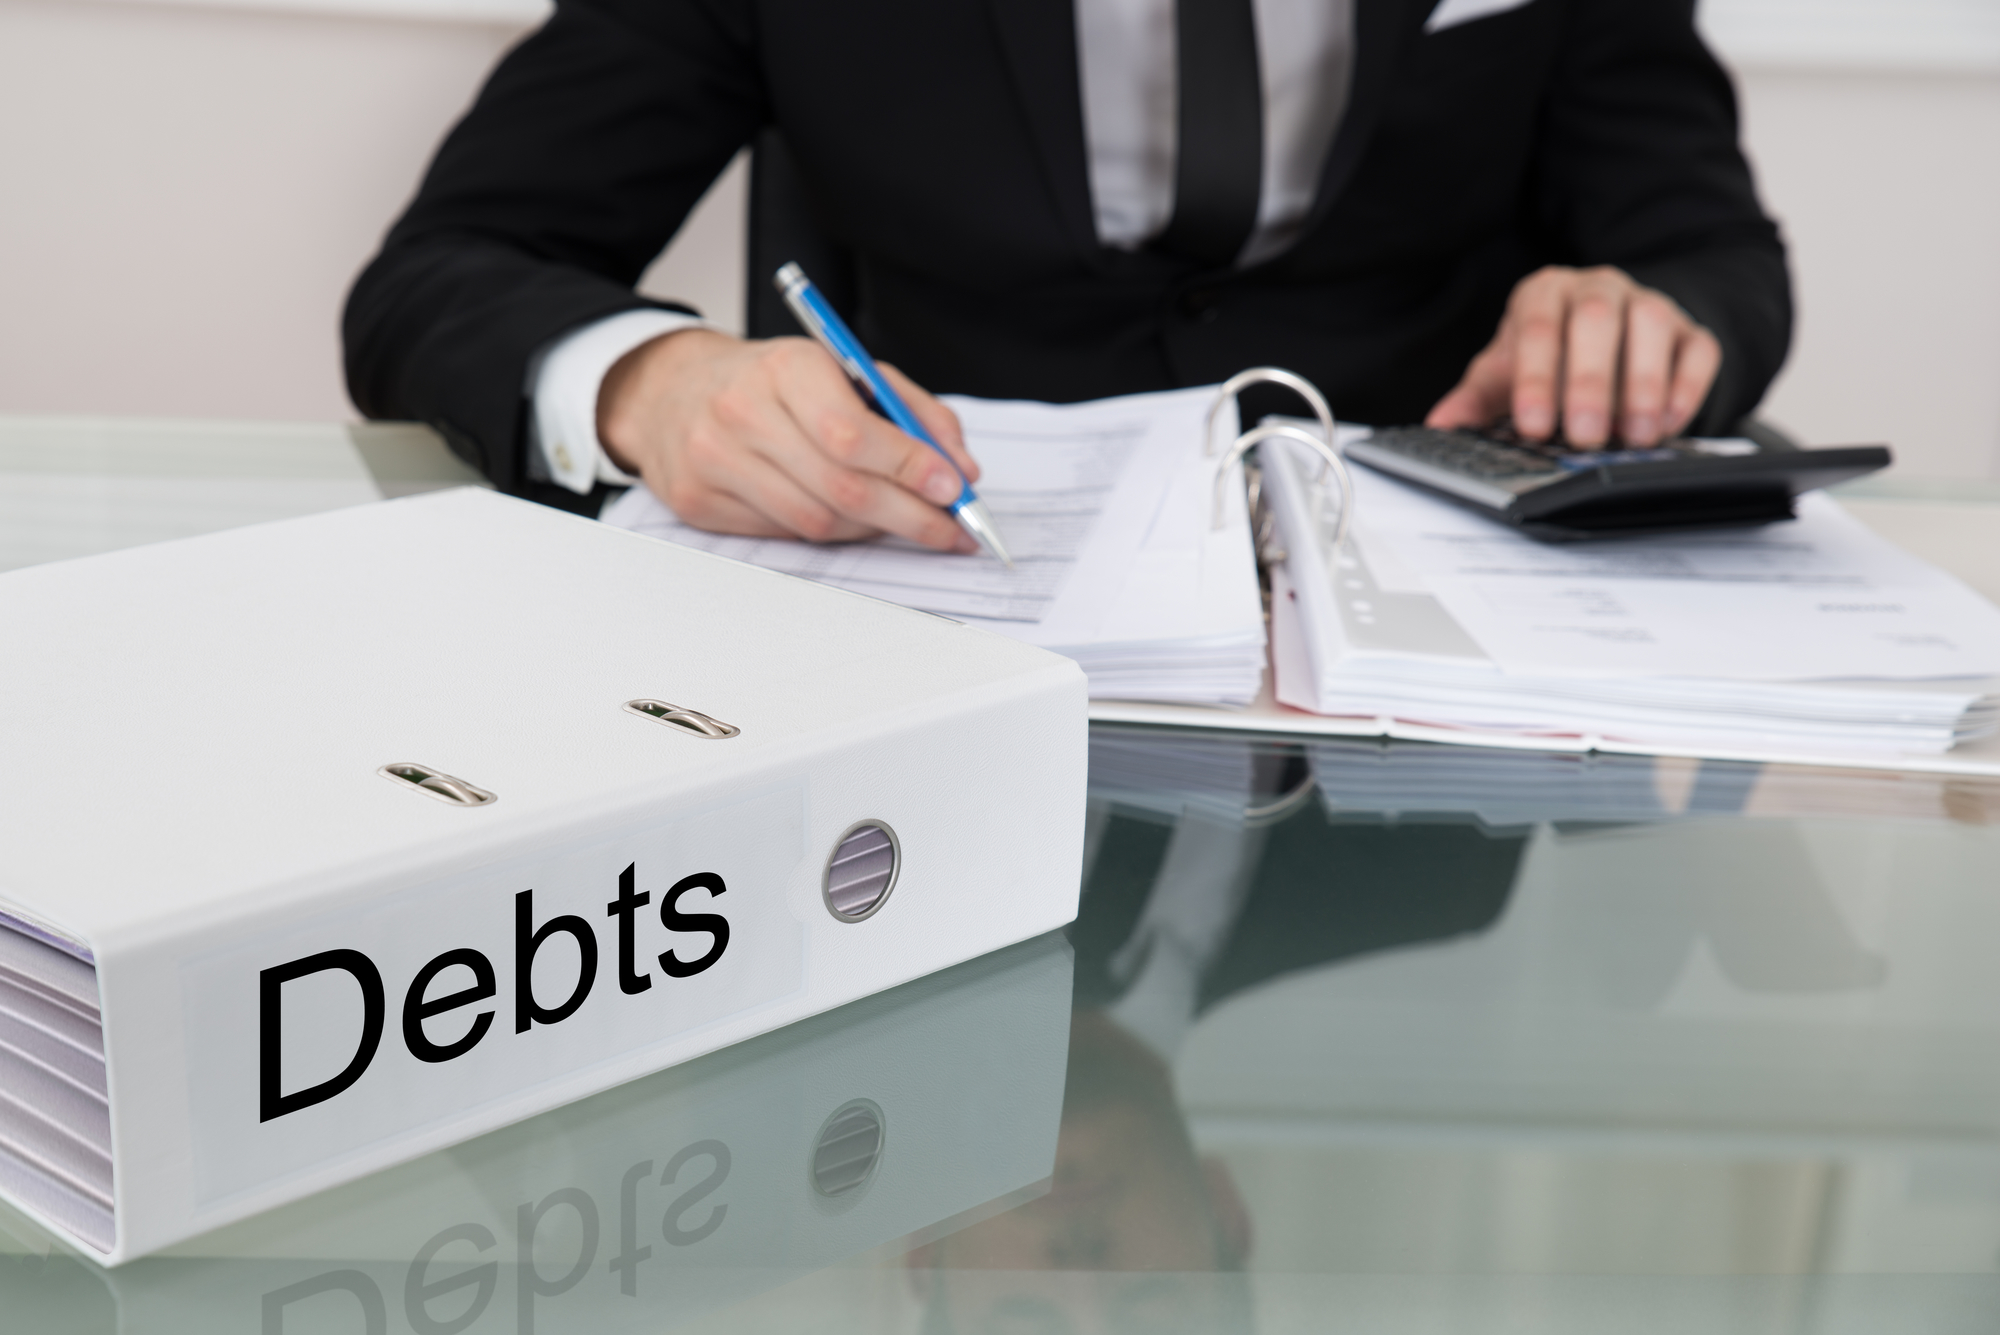 ways to reduce or eliminate debt